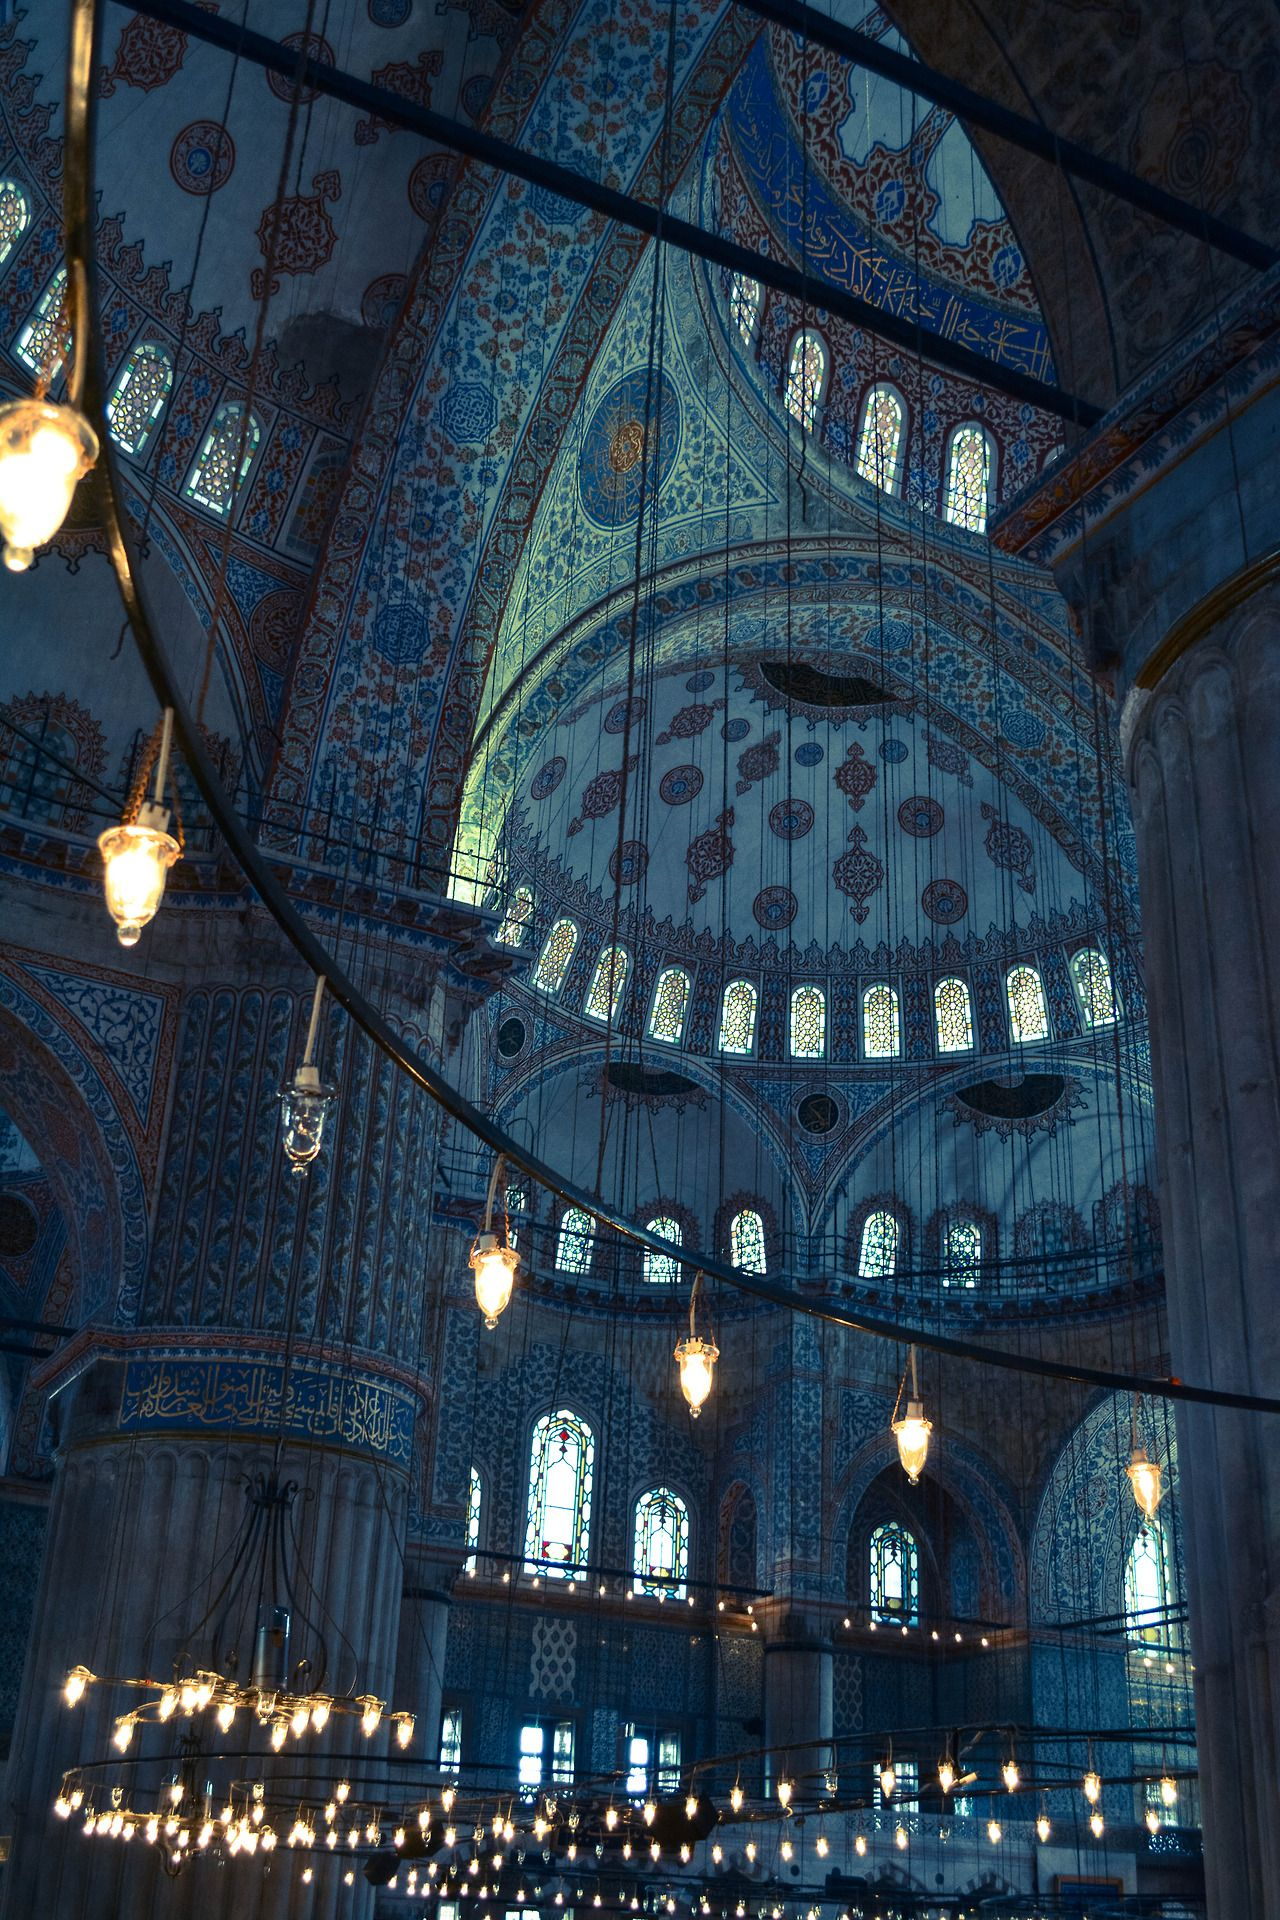 Sultan Ahmed Mosque (Blue Mosque) in Istanbul, Turkey. #beautifularchitecture